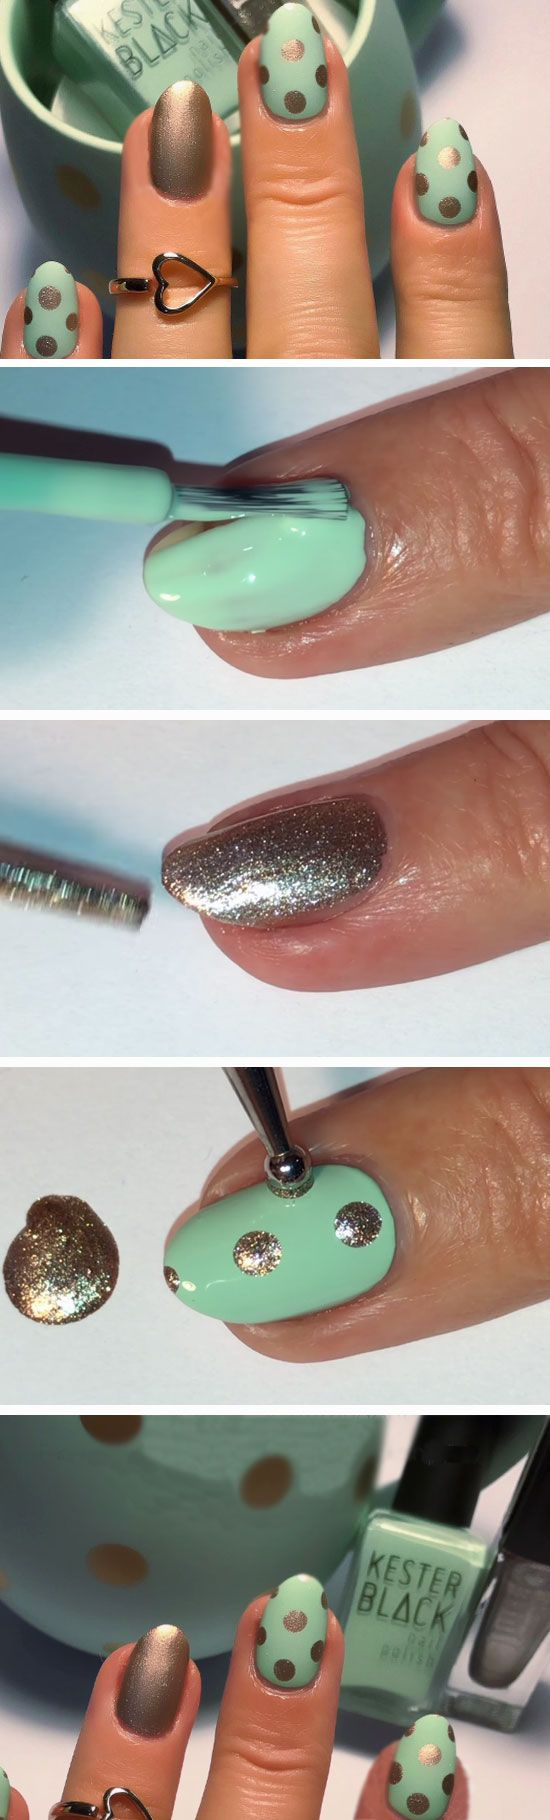 24 Easy Spring Nail Designs for Short Nails | Diseño de uñas para ...